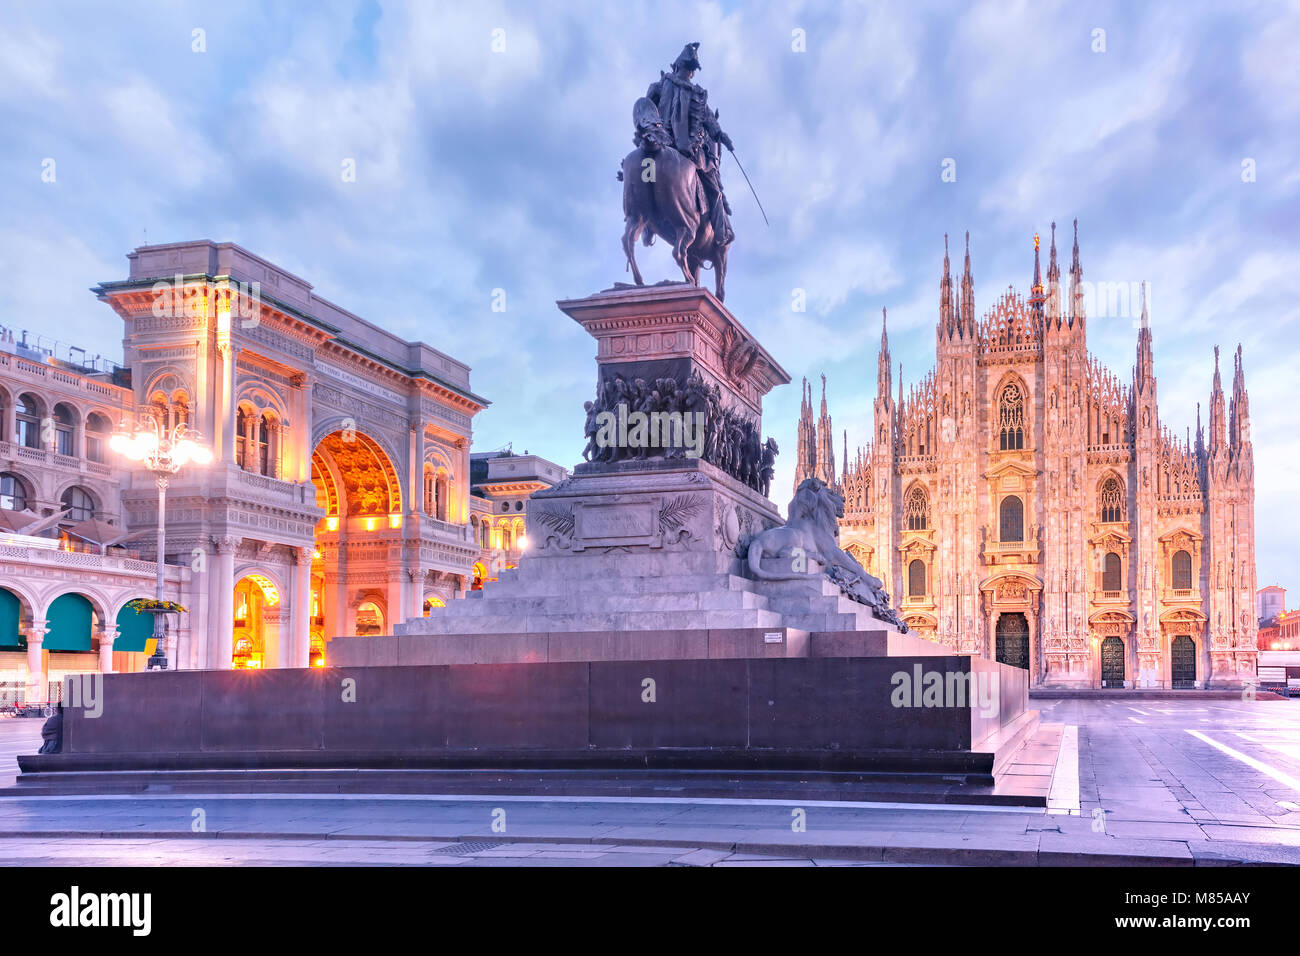 Night Piazza del Duomo in Milan, Italy - Stock Image